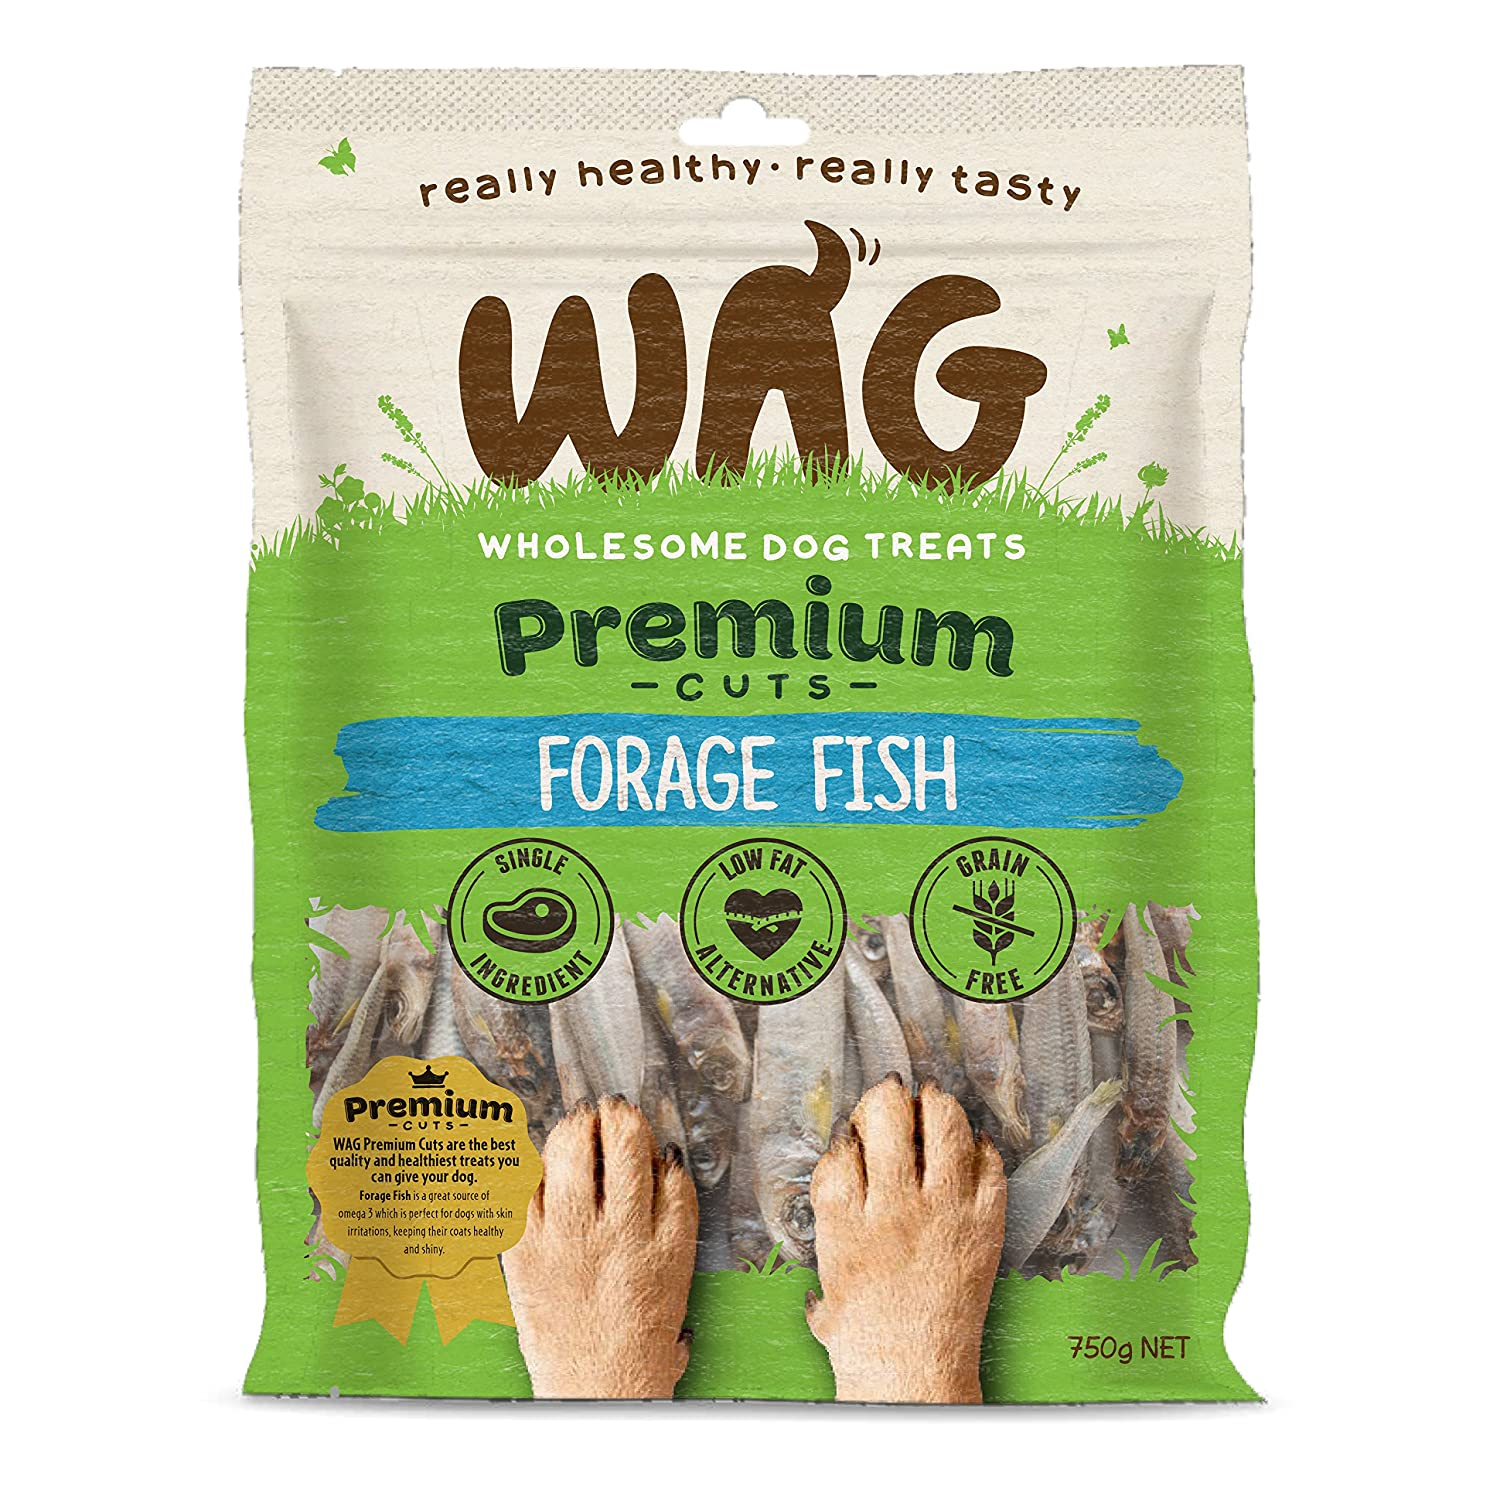 750g WAG Forage Fish 750g, Grain Free Hypoallergenic Natural Australian Made Dog Treat Chew, Perfect for Training